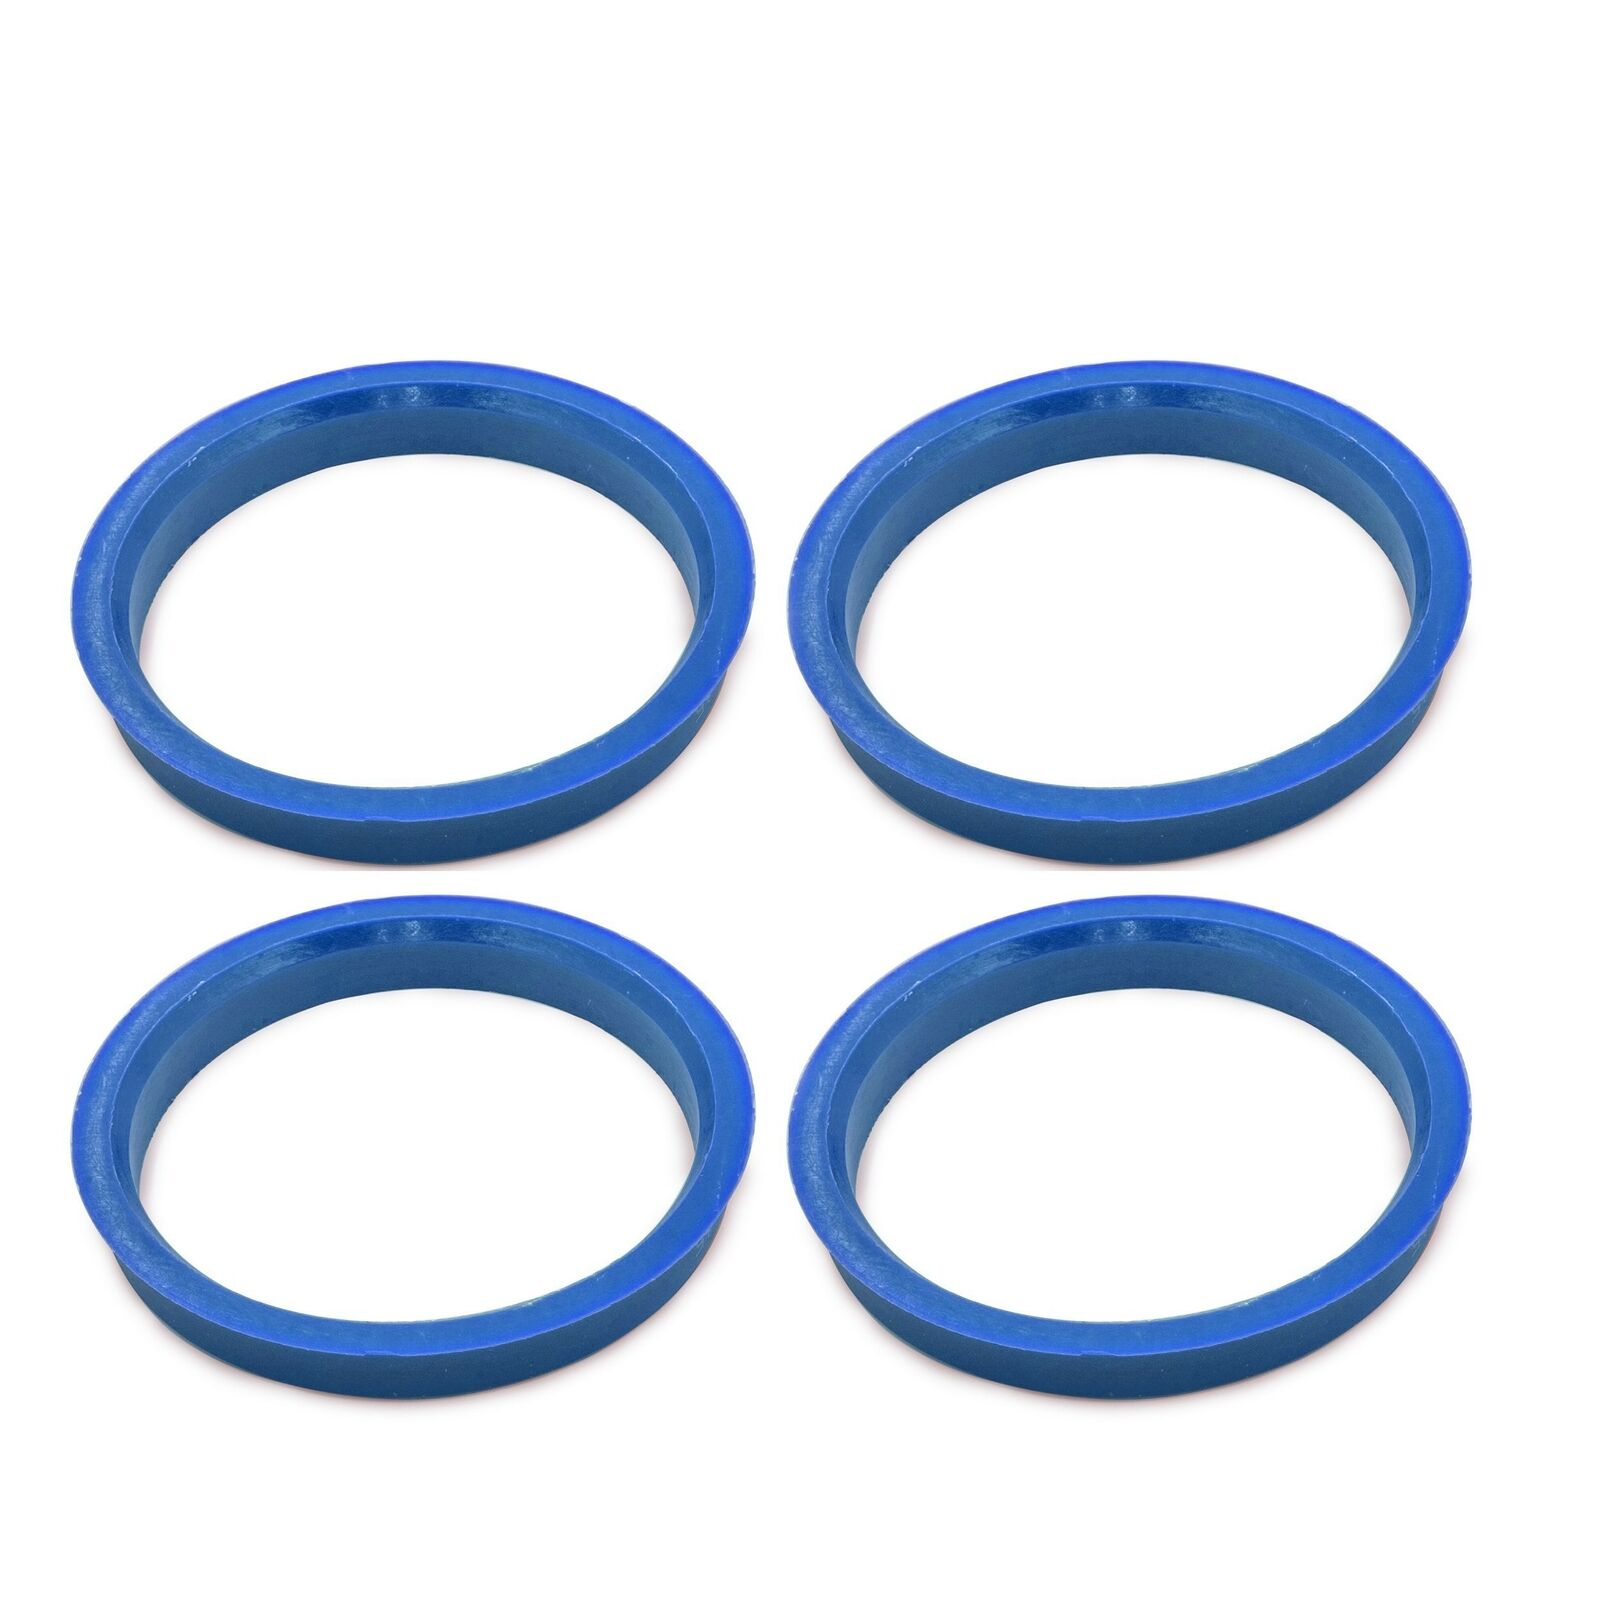 4 pieces Hubcentric Rings Hub Centric Rings 54.1x71.12mm